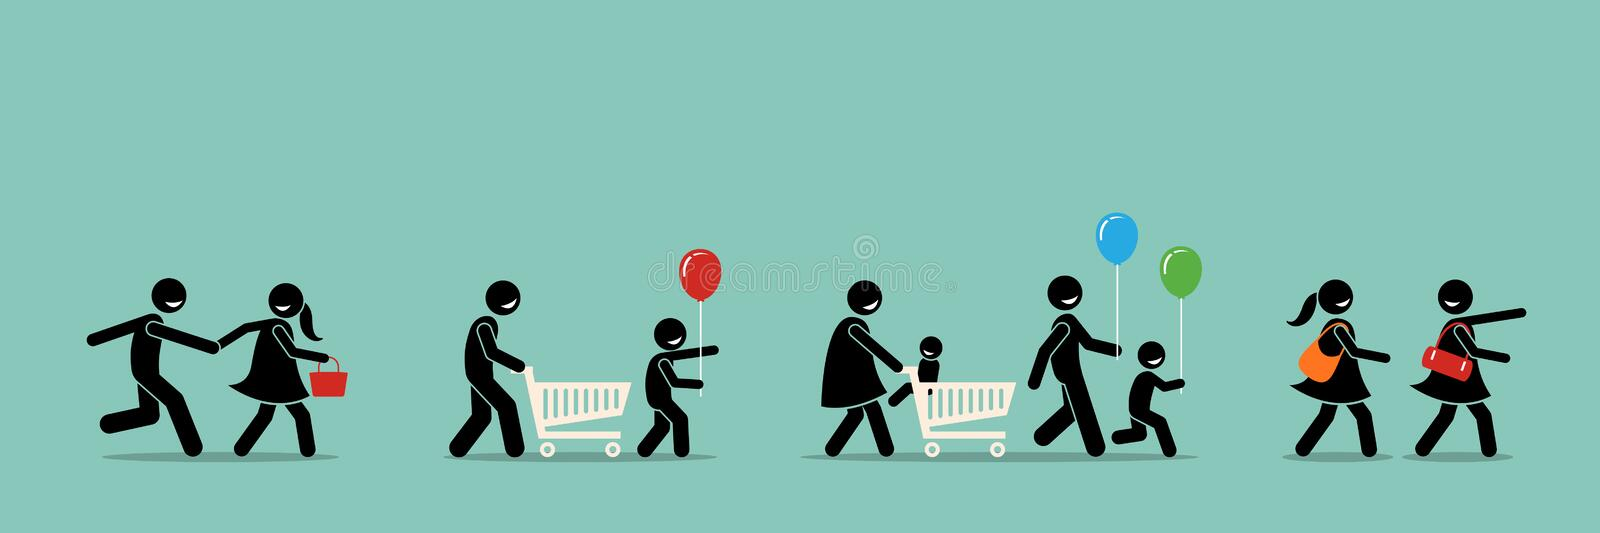 Happy shoppers shopping royalty free illustration